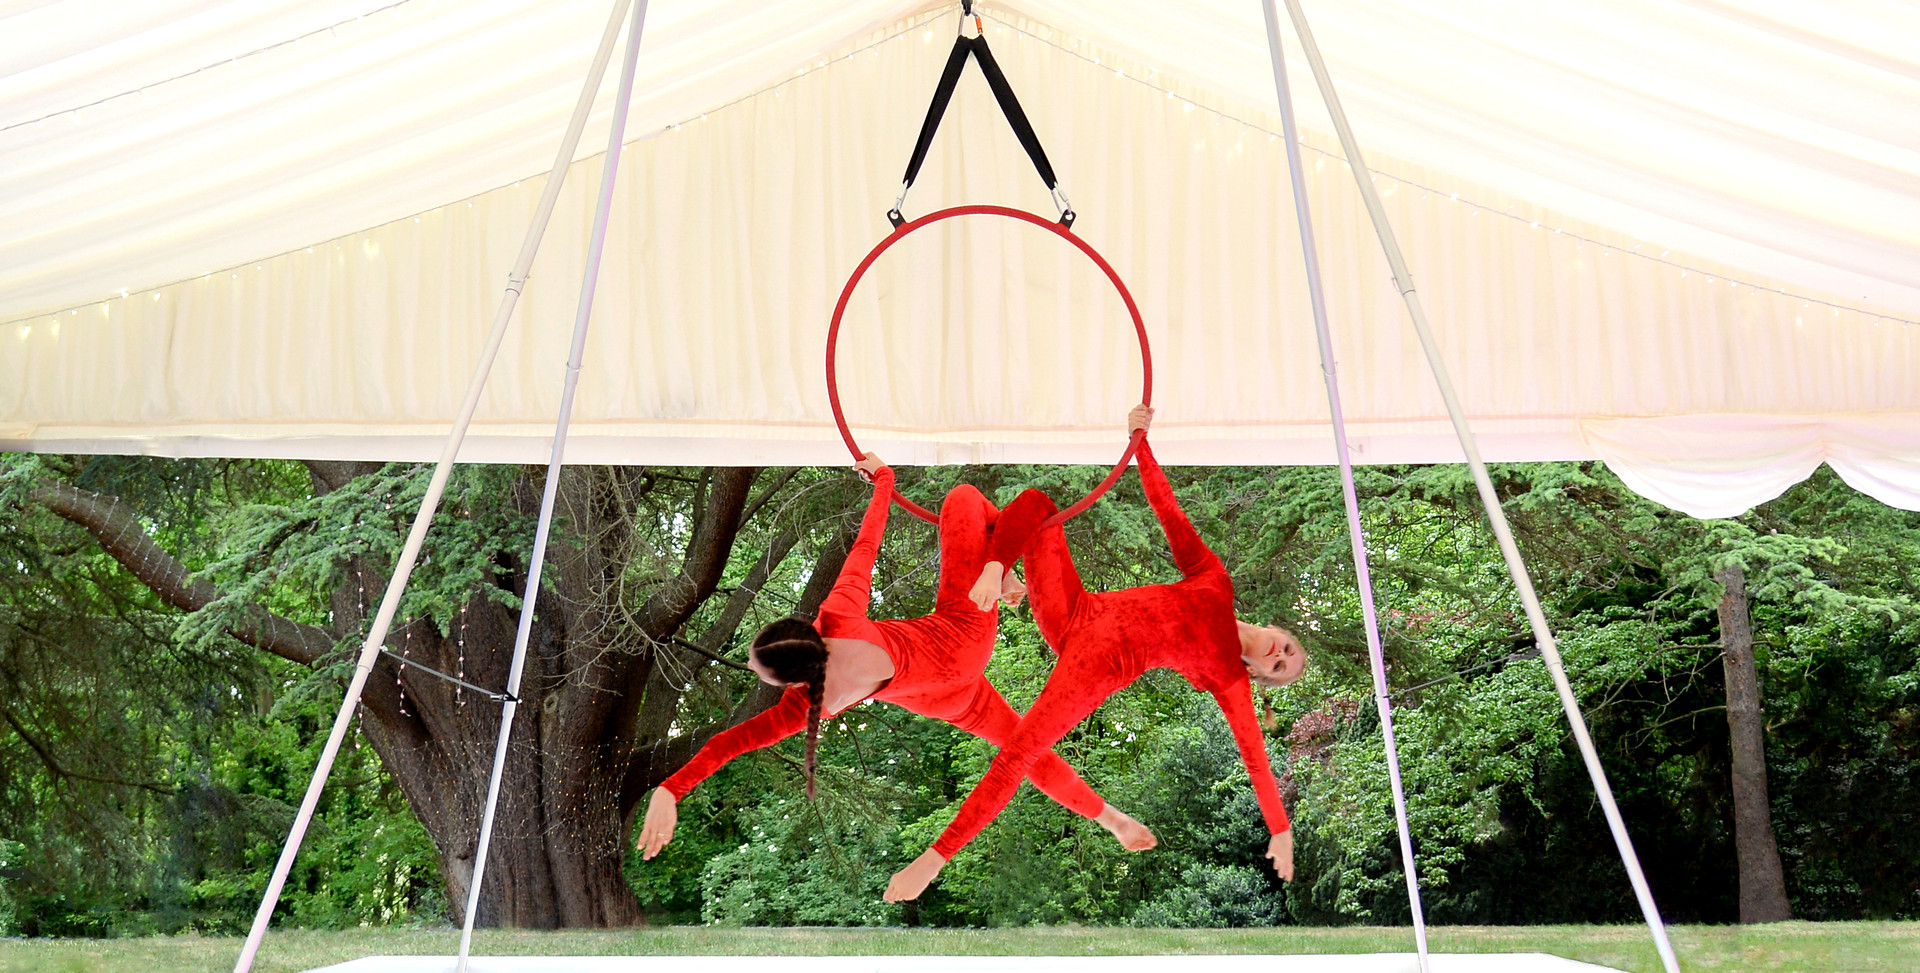 HOOP DOUBLES ON AERIAL FREESTANDING RIG - Duo aerial hoop performance on portable aerial rig with no themed dressing. Entertainment at a Bat Mitzvah in a marquee at a beautiful outdoor venue